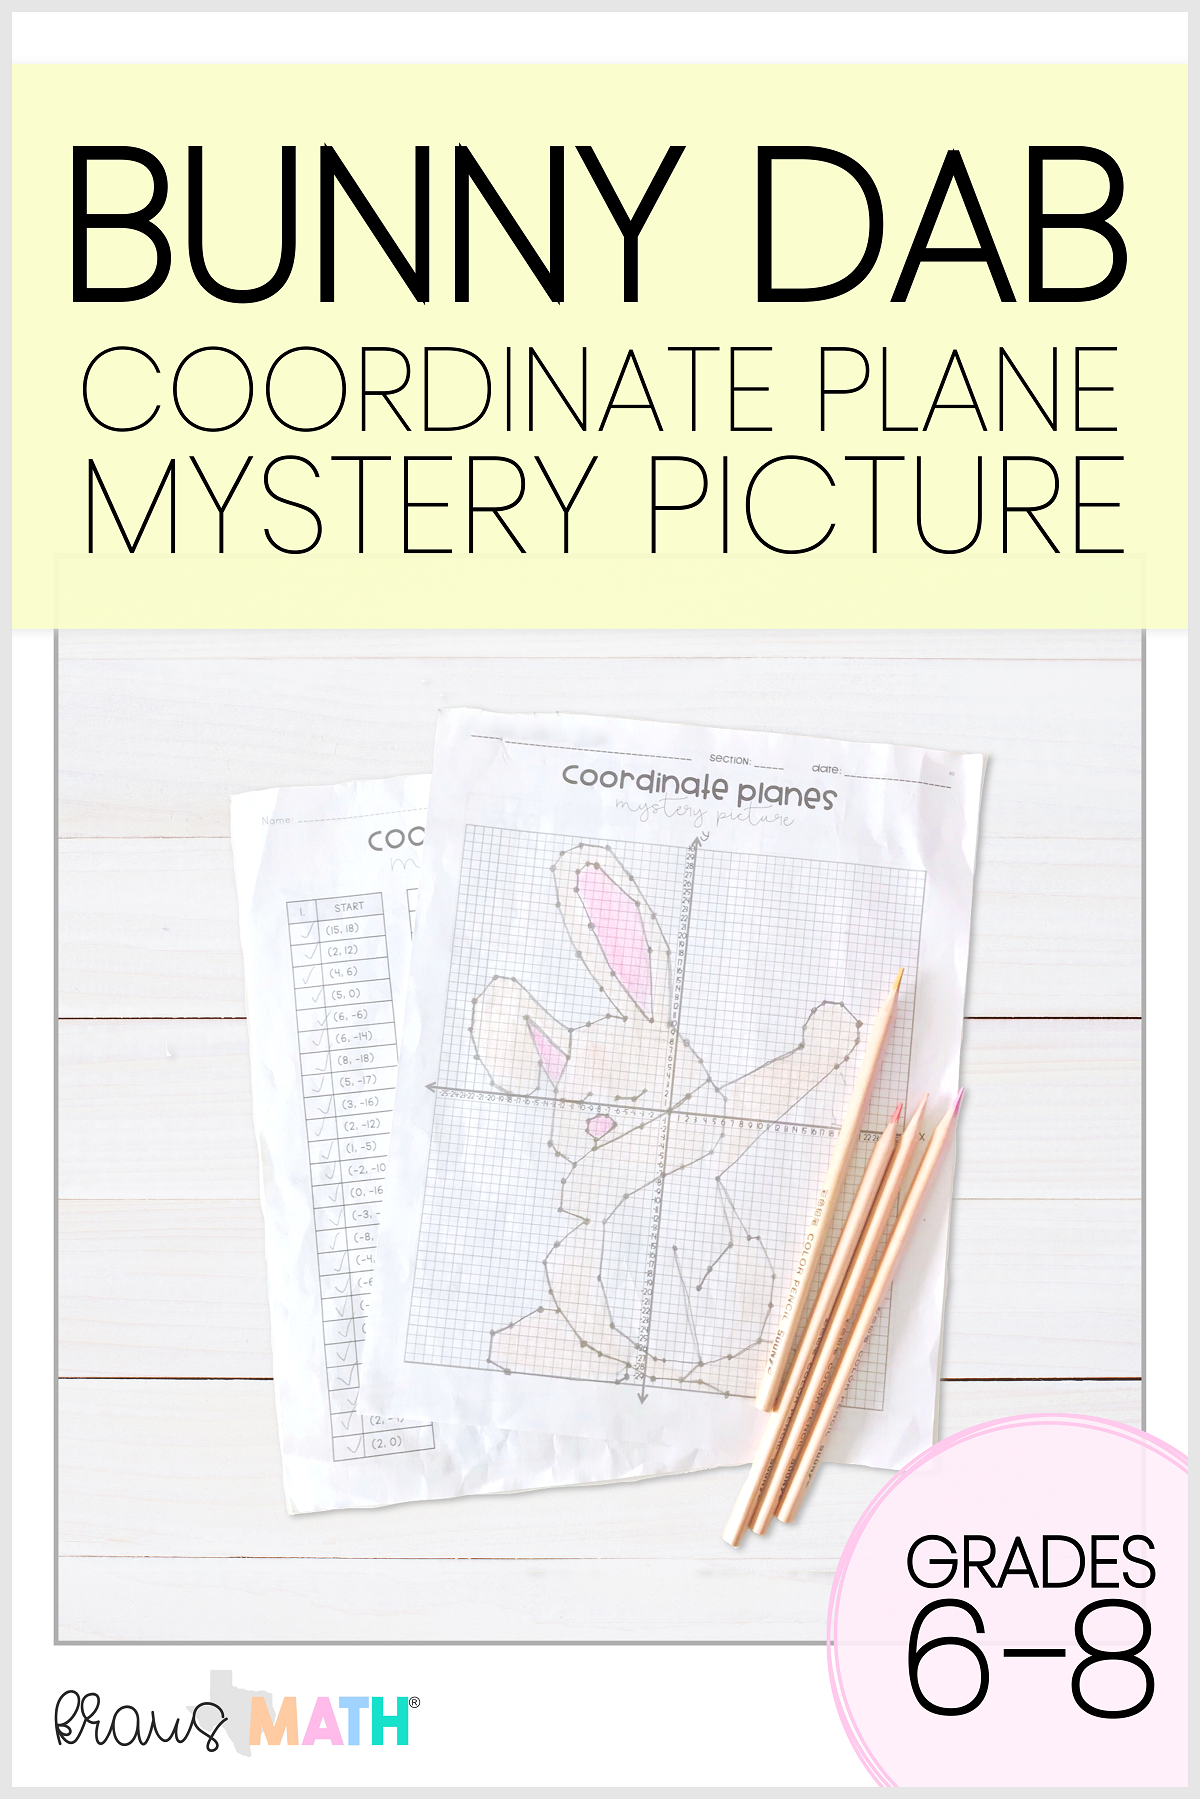 Easter Bunny Dab Coordinate Plane Mystery Picture 4